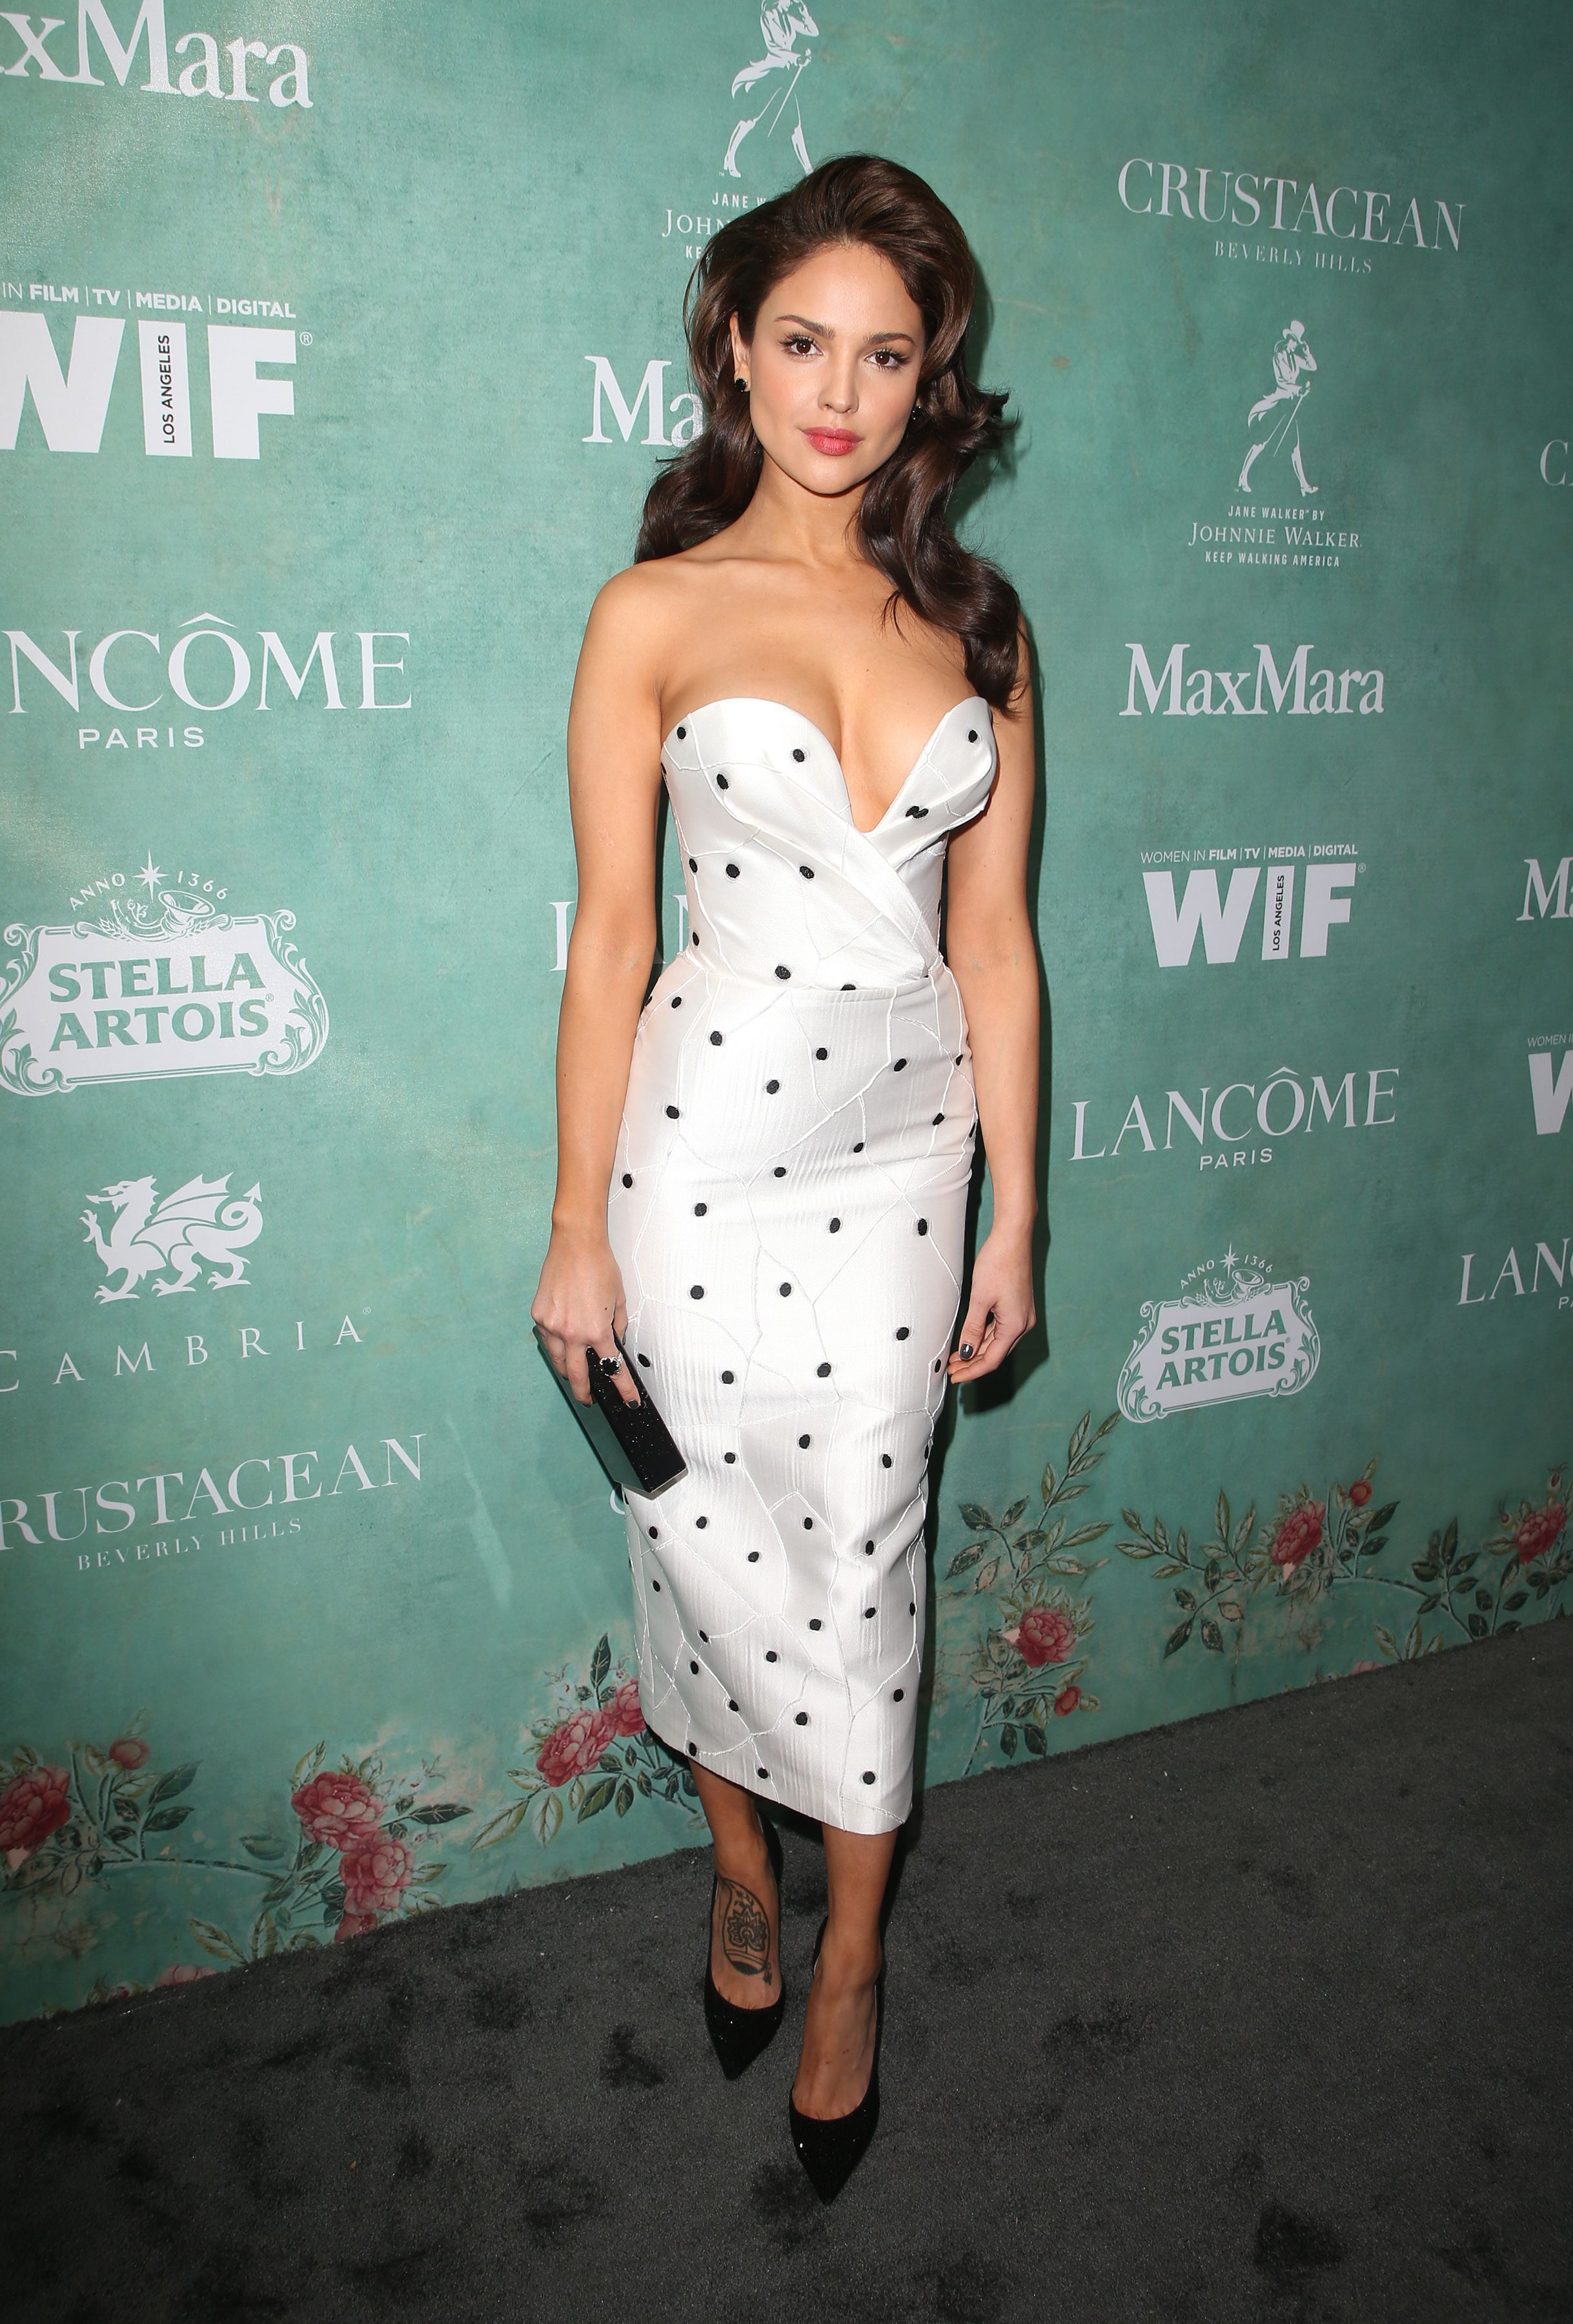 Eiza Gonzalez - Women in Film Pre-Oscar Cocktail Party Photos - Sexy Actress Pictures | Hot Actress Pictures - ActressSnaps.com